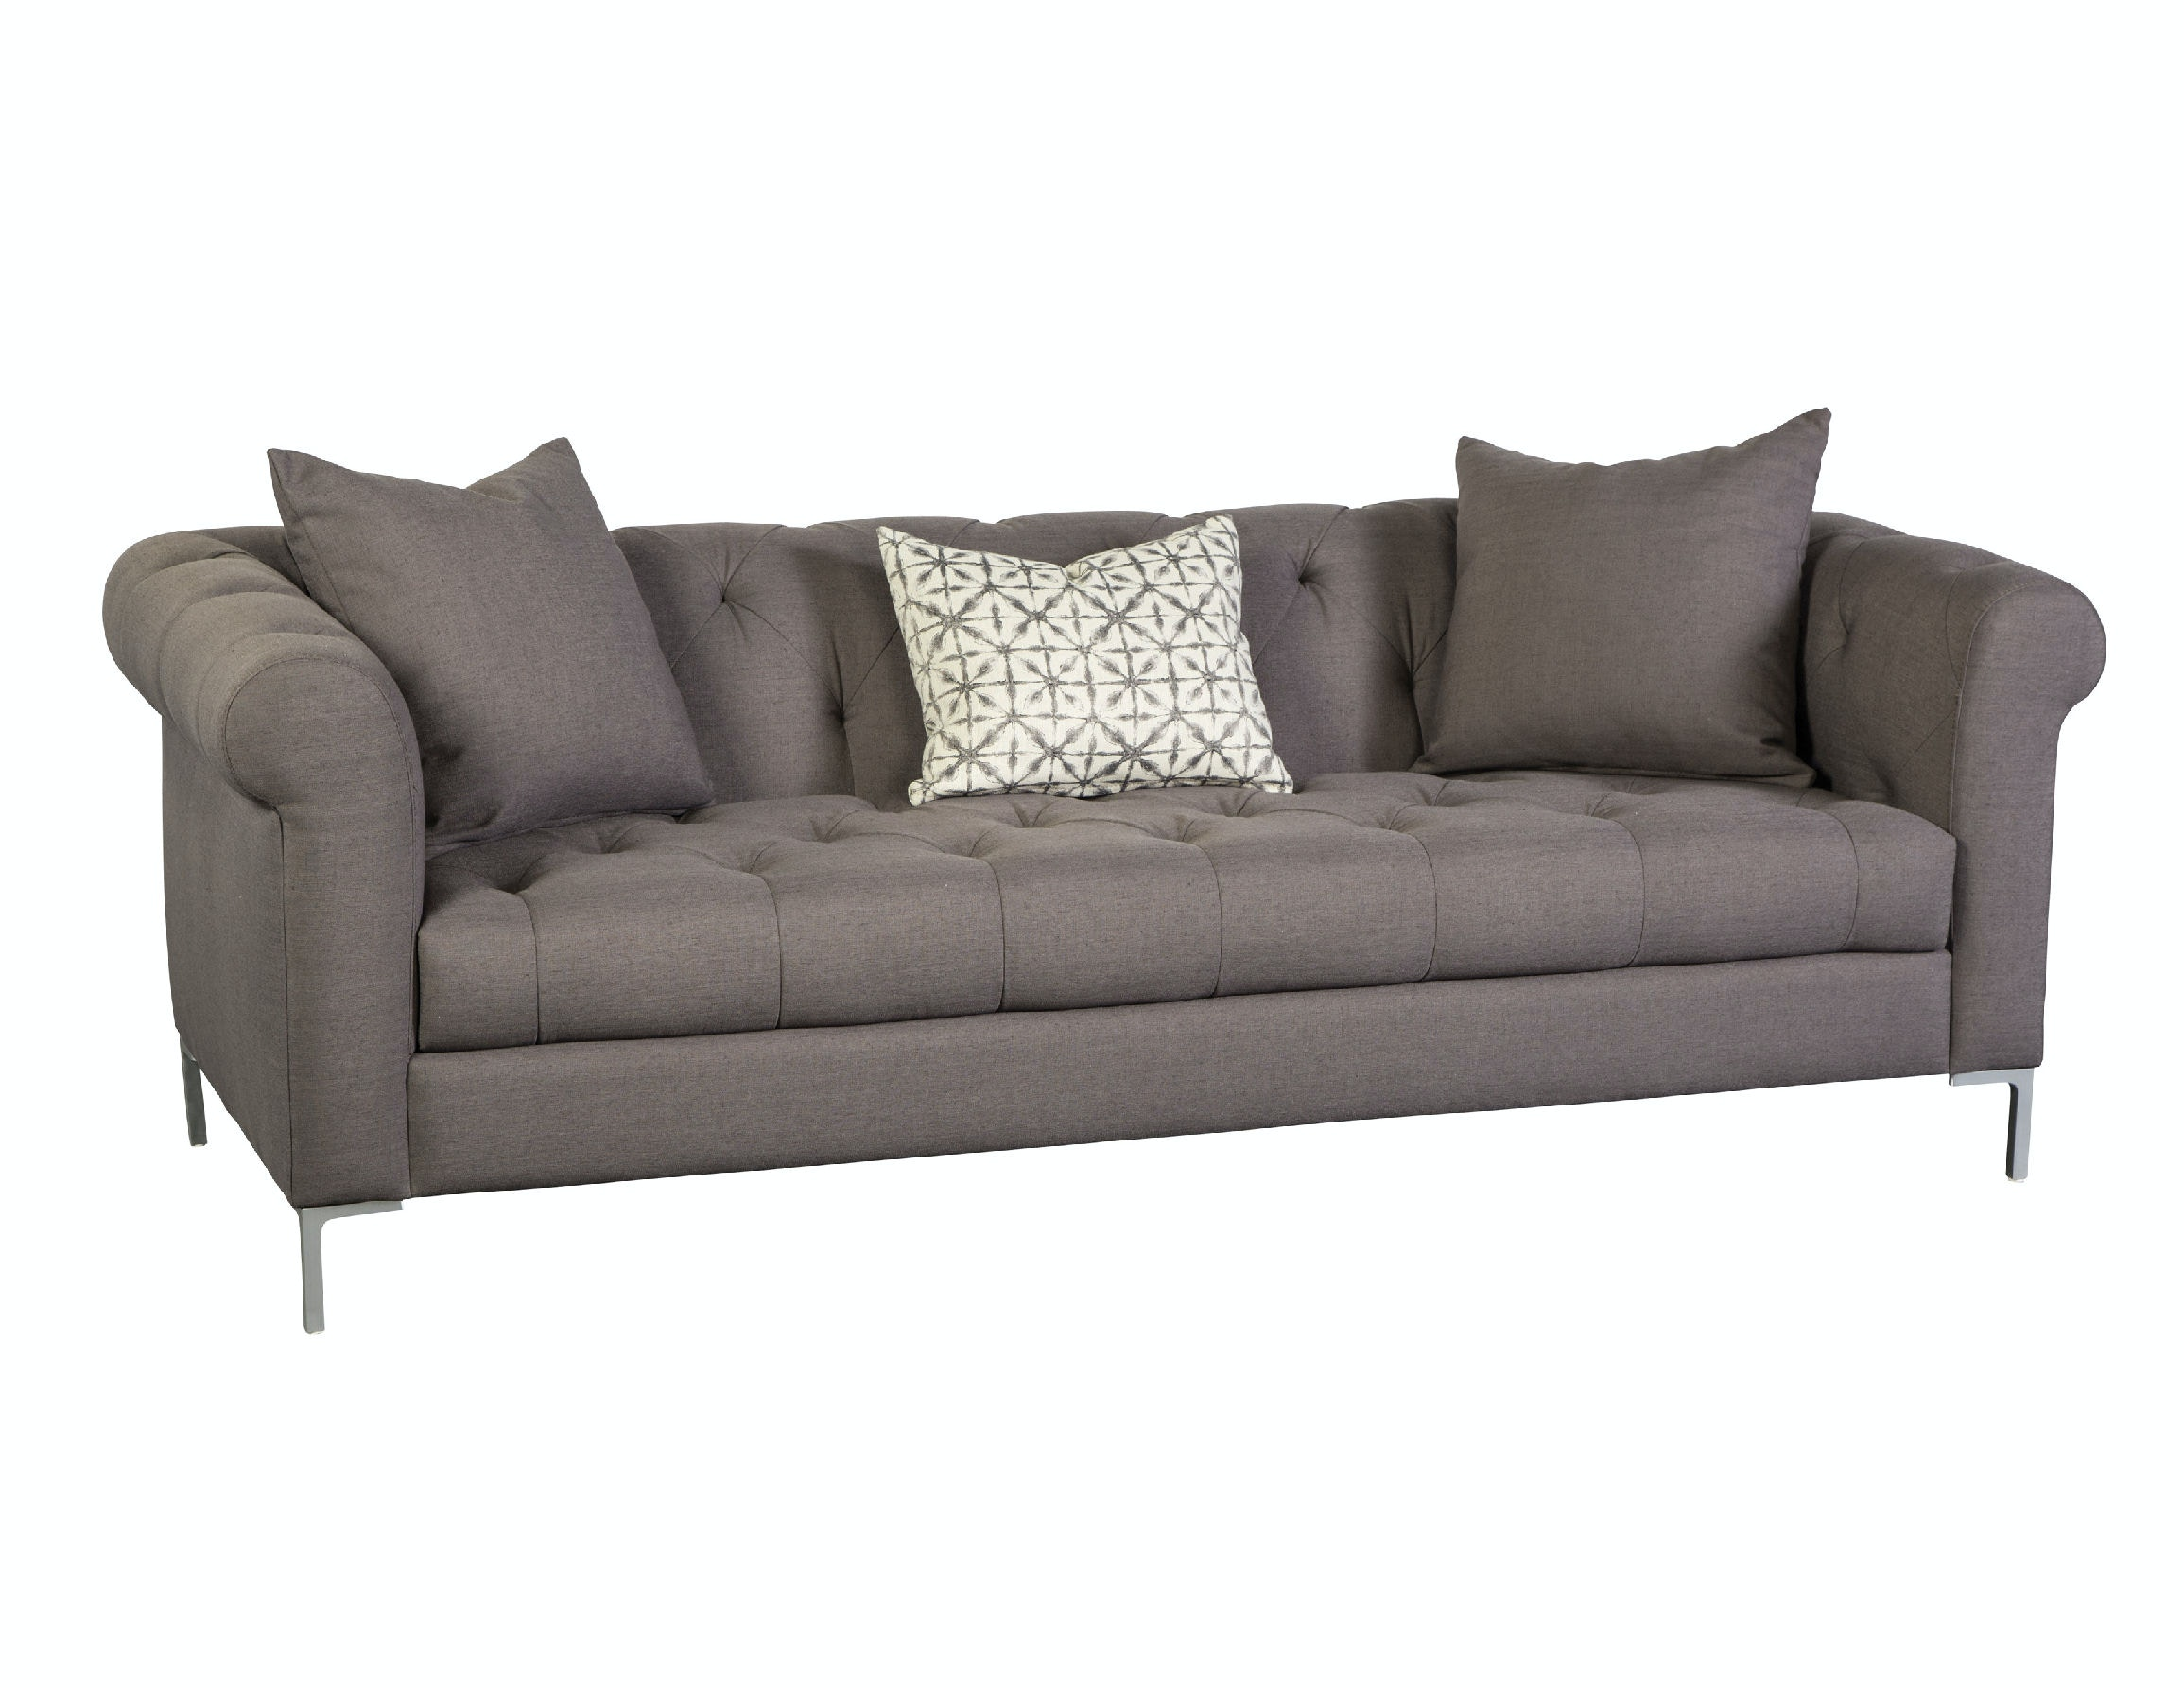 Jonathan Louis International Sofa 21130